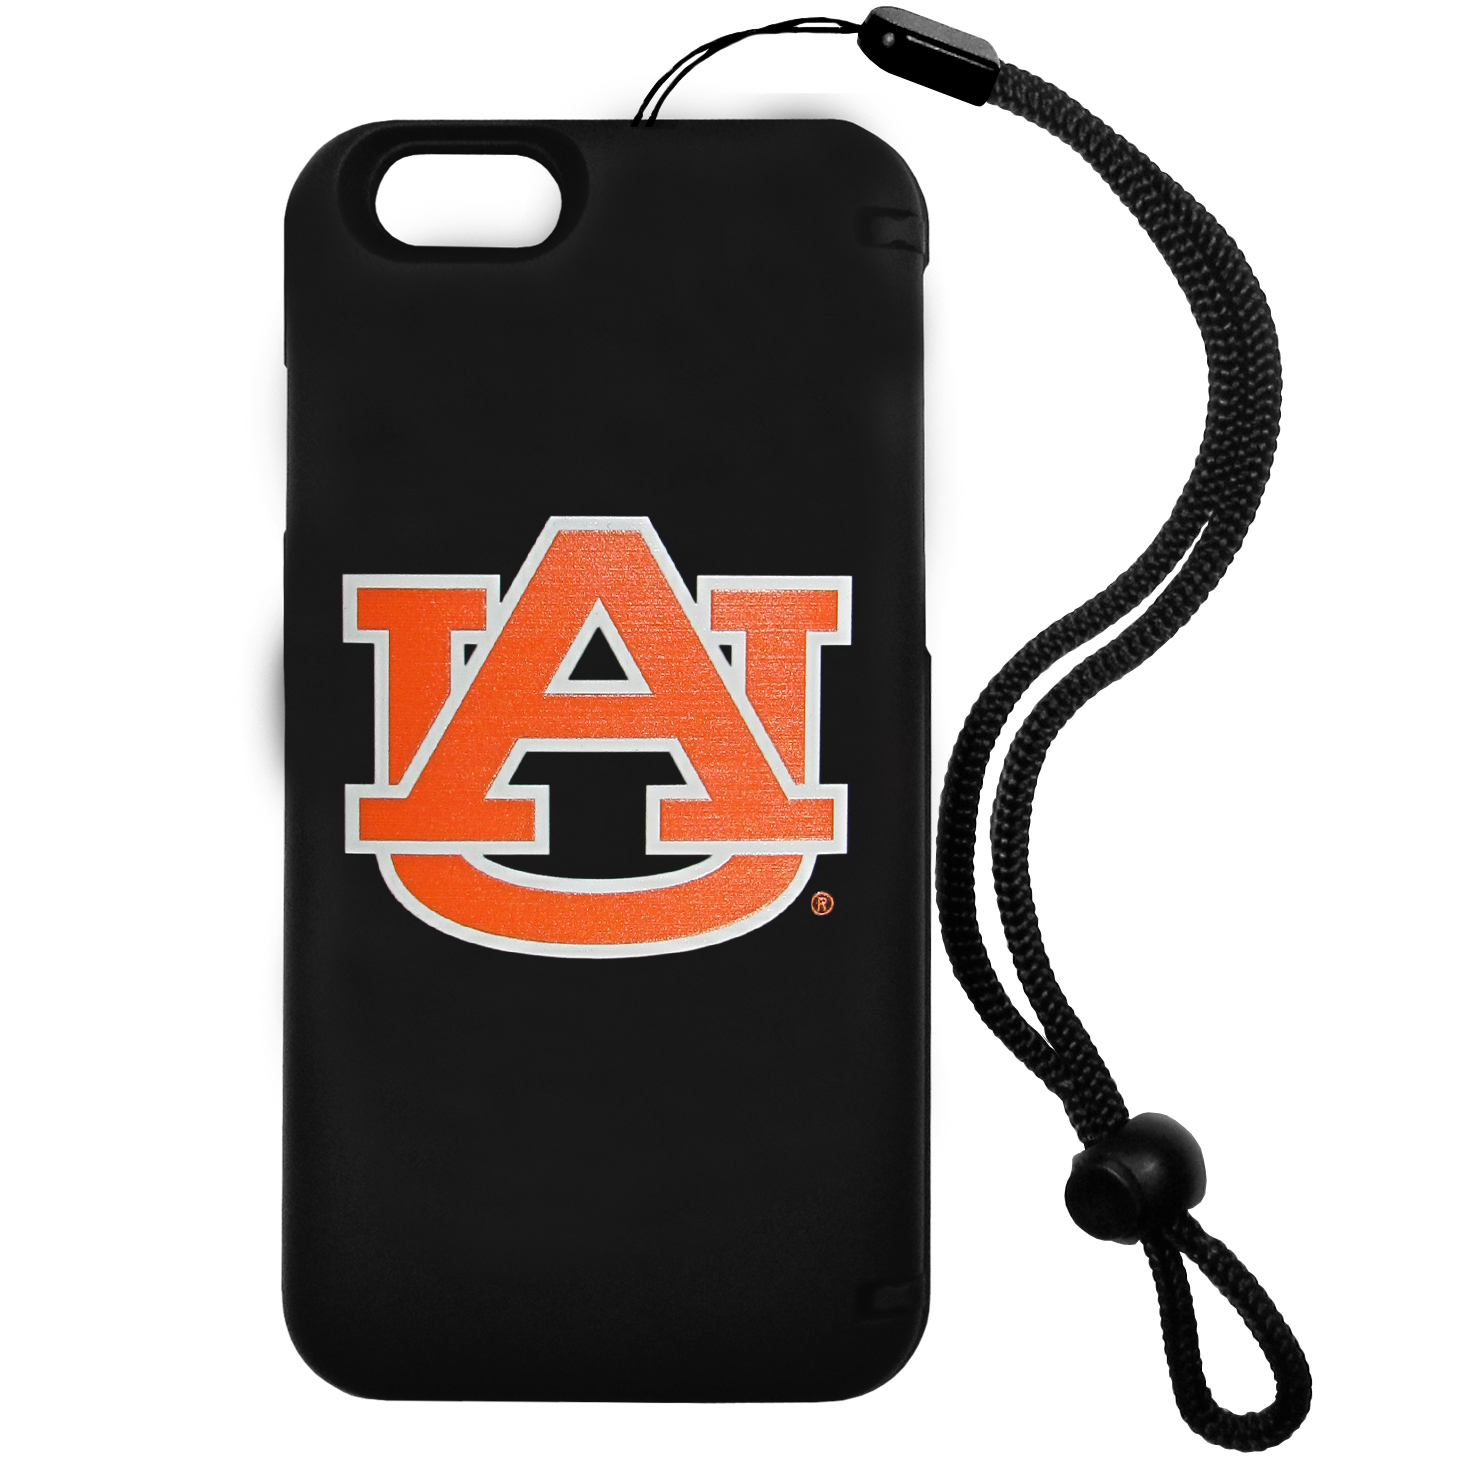 Auburn Tigers iPhone 6 Everything Case - This case really does have everything but the kitchen sink! The hidden compartment lets you keep your cards, money and tickets to the big game safe and secure and has a compact mirror so you can make sure your game face is ready to go. It also comes with a kickstand to make chatting and watching videos a breeze. The wrist strap allows you to travel with ease with your everything case. If that's not enough, it also comes with the Auburn Tigers logo printed in expert detail on the front.